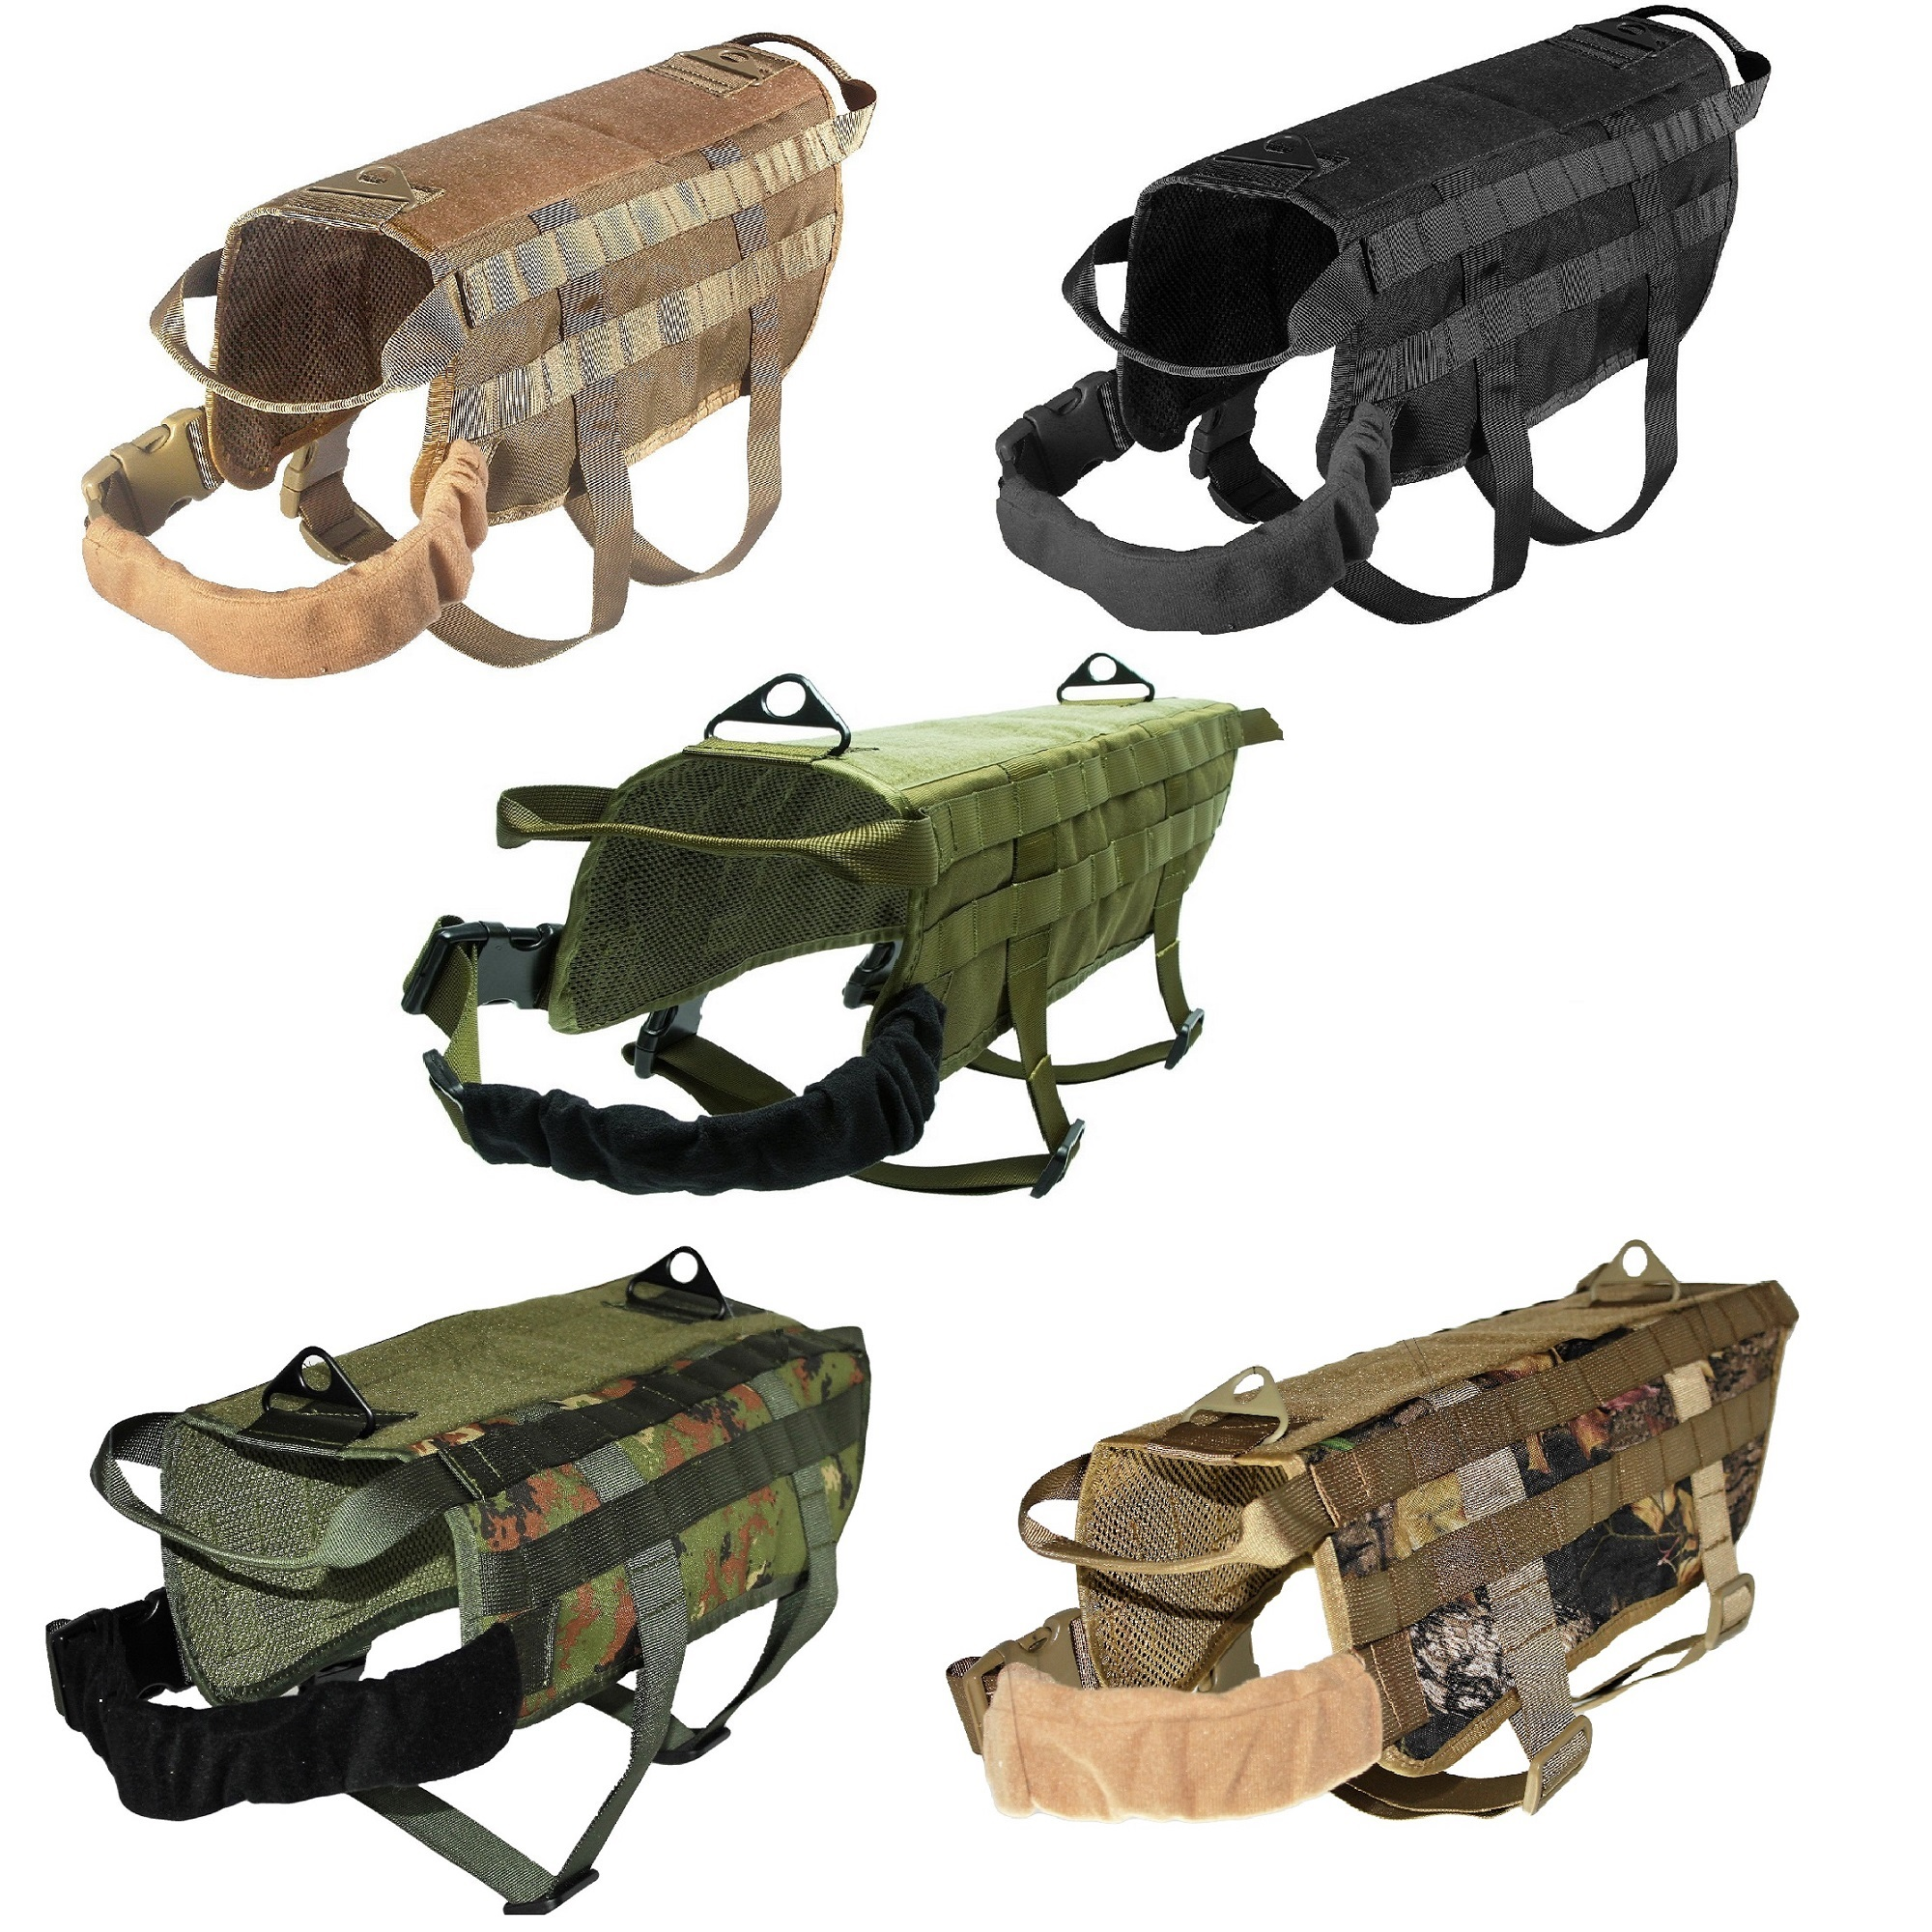 TACTICAL Dog Vest Harness K9 Molle MILITARY Army PATCH Panel Black sz X-Small